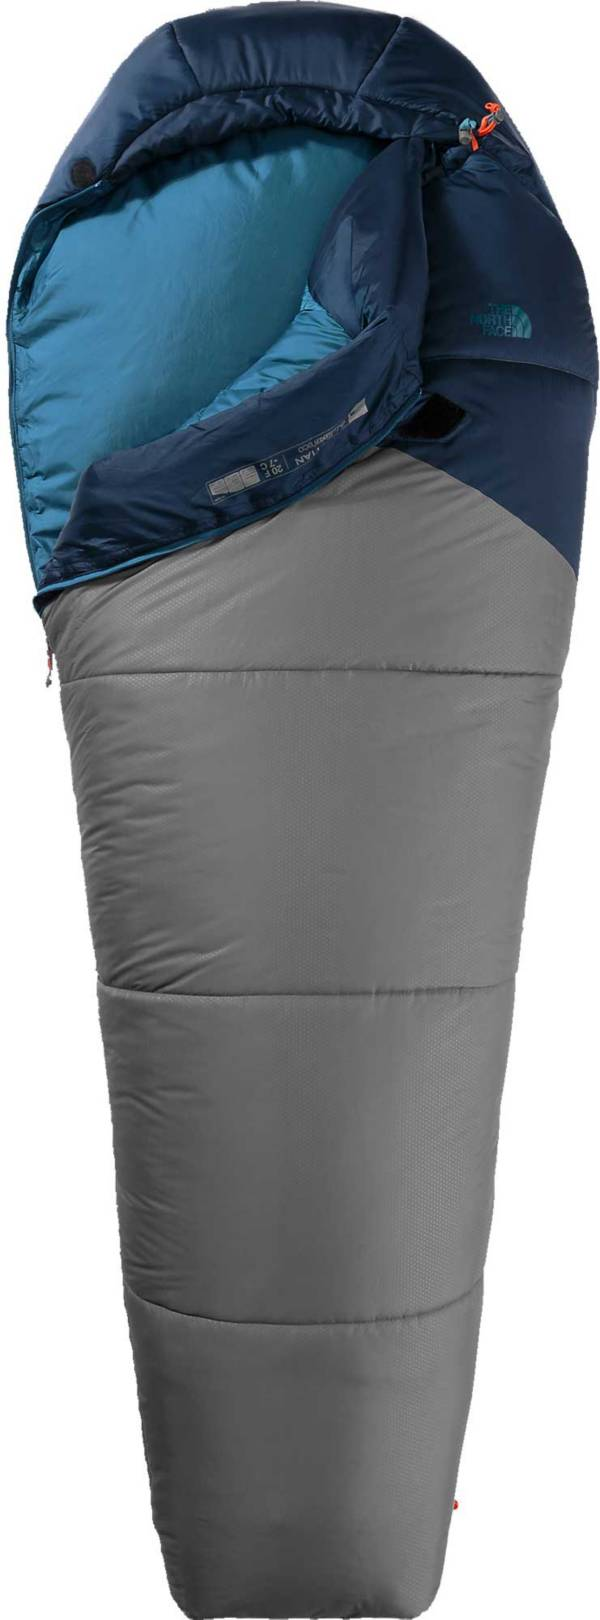 The North Face Aleutian 20°F Sleeping Bag product image